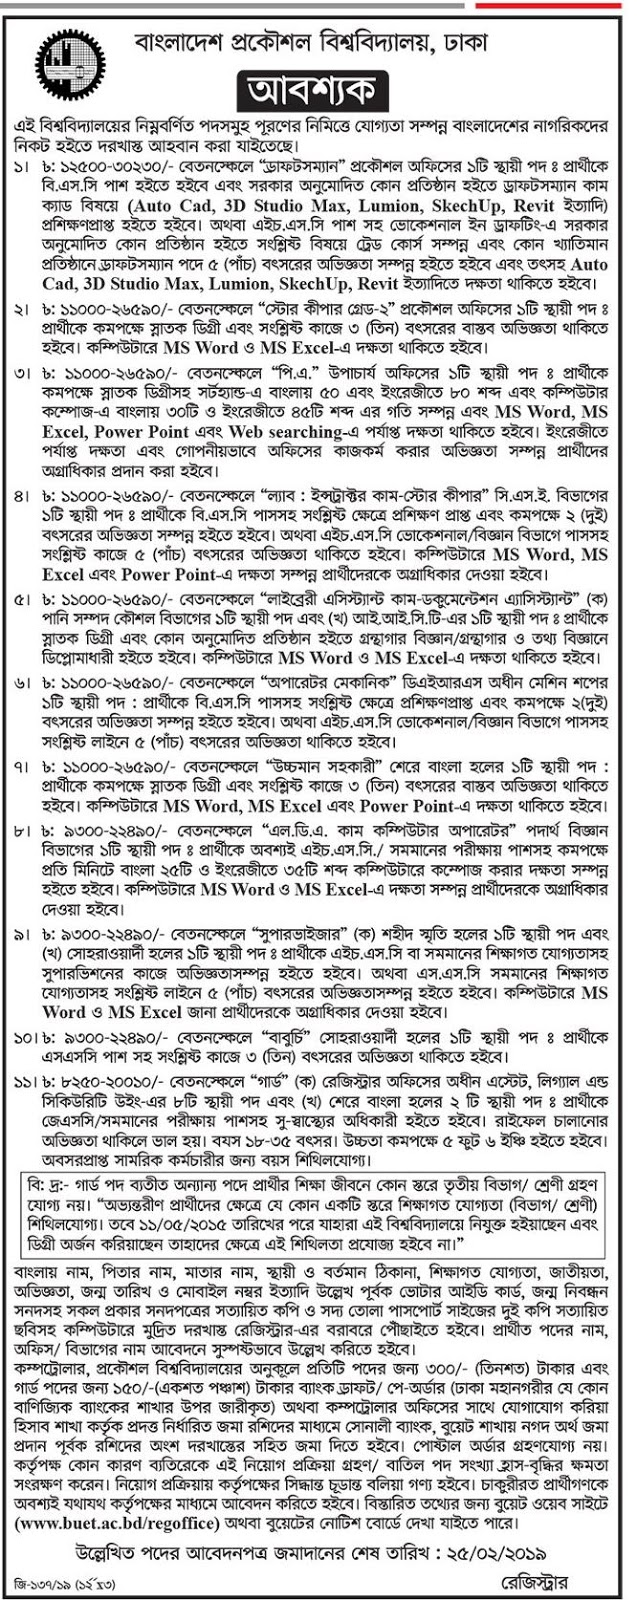 Bangladesh University of Engineering and Technology (BUET) Job Circular 2019